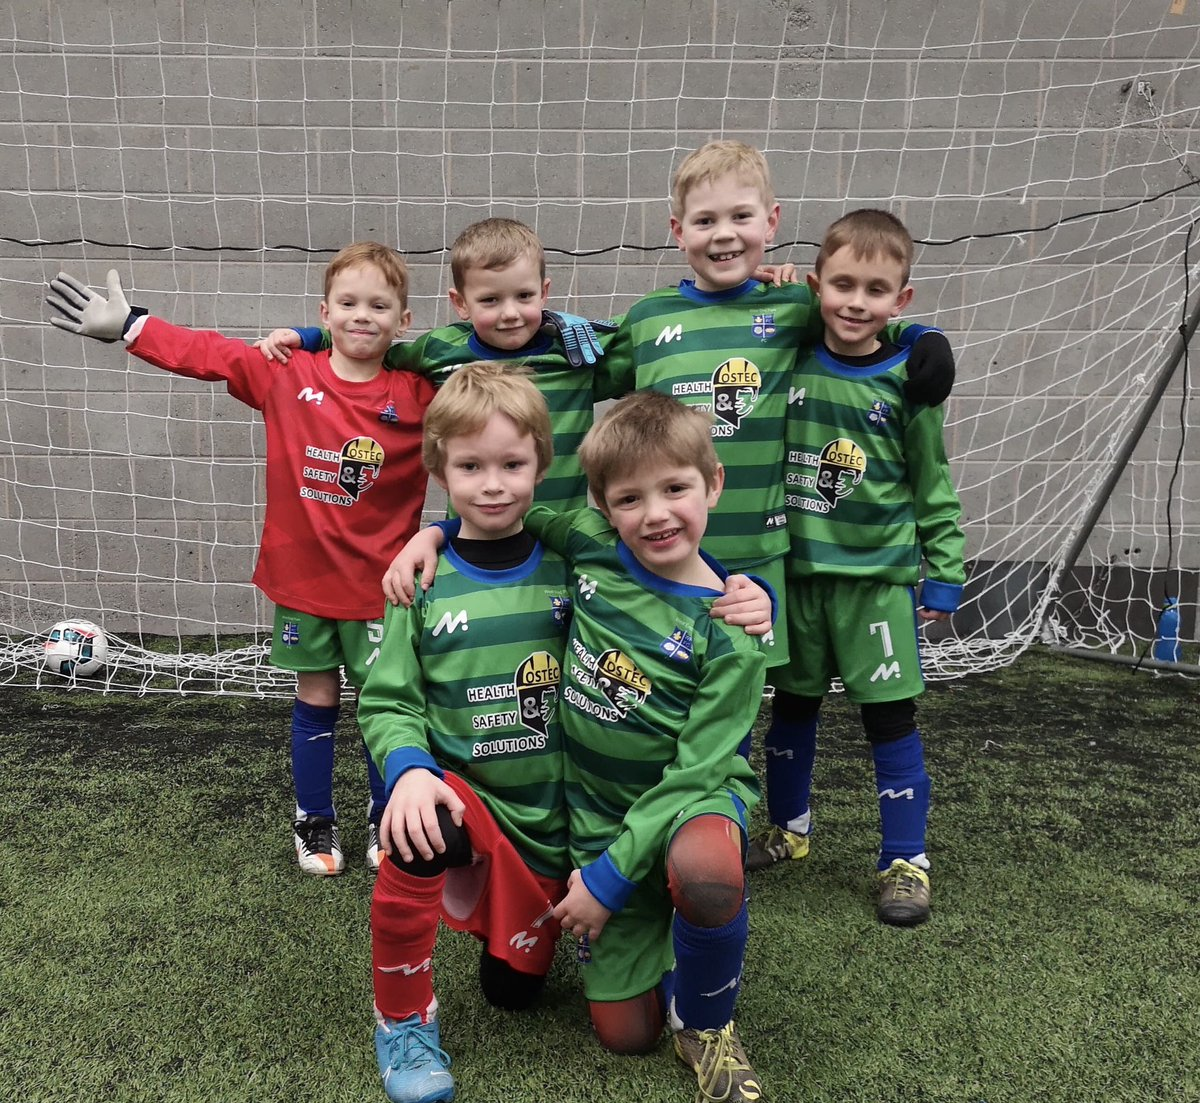 #Shoutout to Westendpark Titans, a newly formed team, showing off their new kit.   Sign up for 21 Days of Positivity https://bit.ly/2MqpKVo   #GrassrootsFootball #WeOnlyDoPositive #21DaysOfPositivepic.twitter.com/x6PqokU5tI